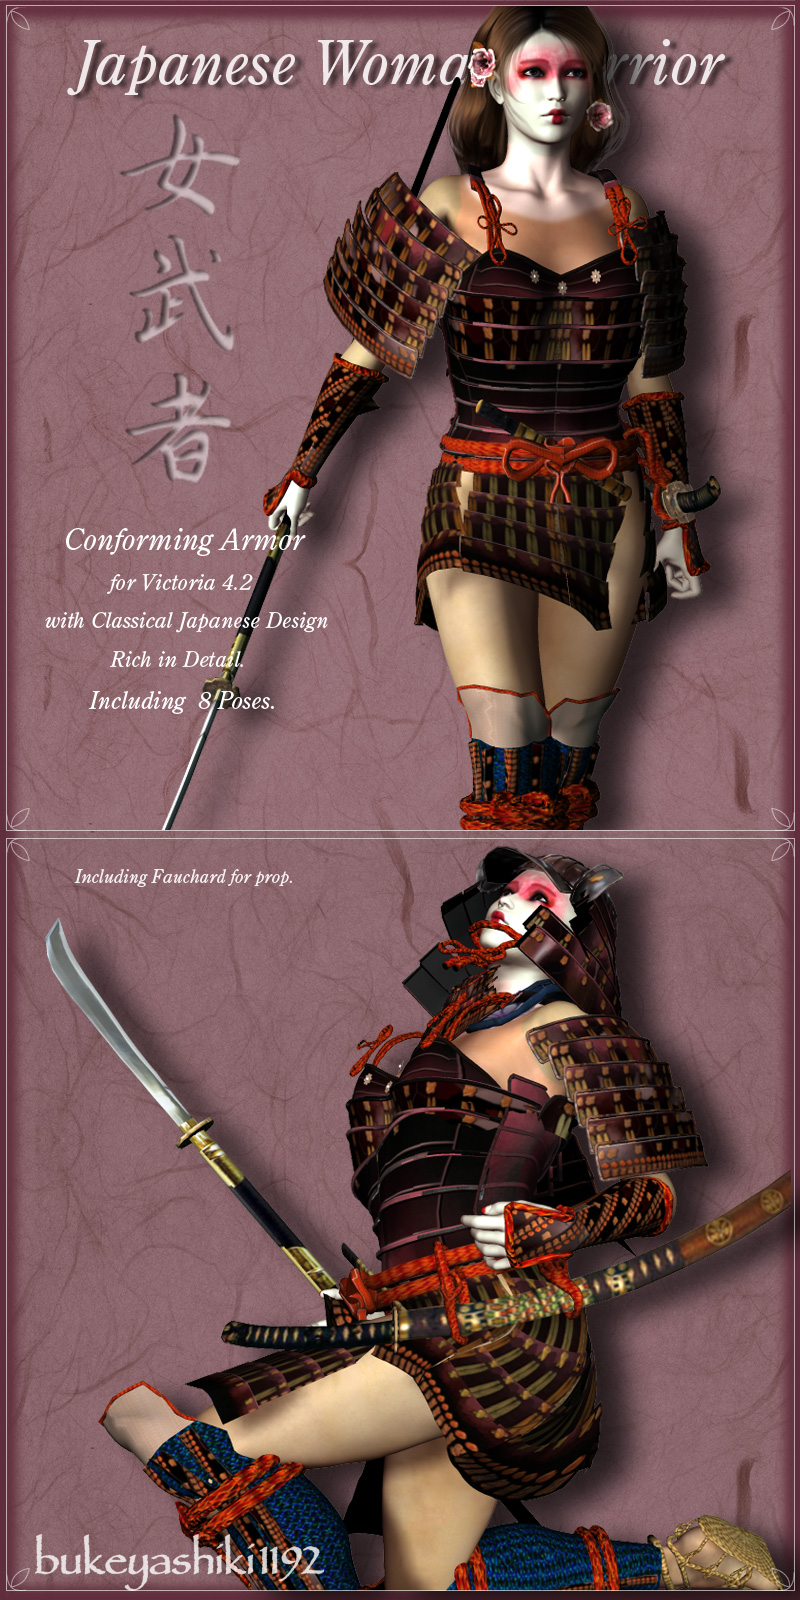 Japanese_Woman_Warrior